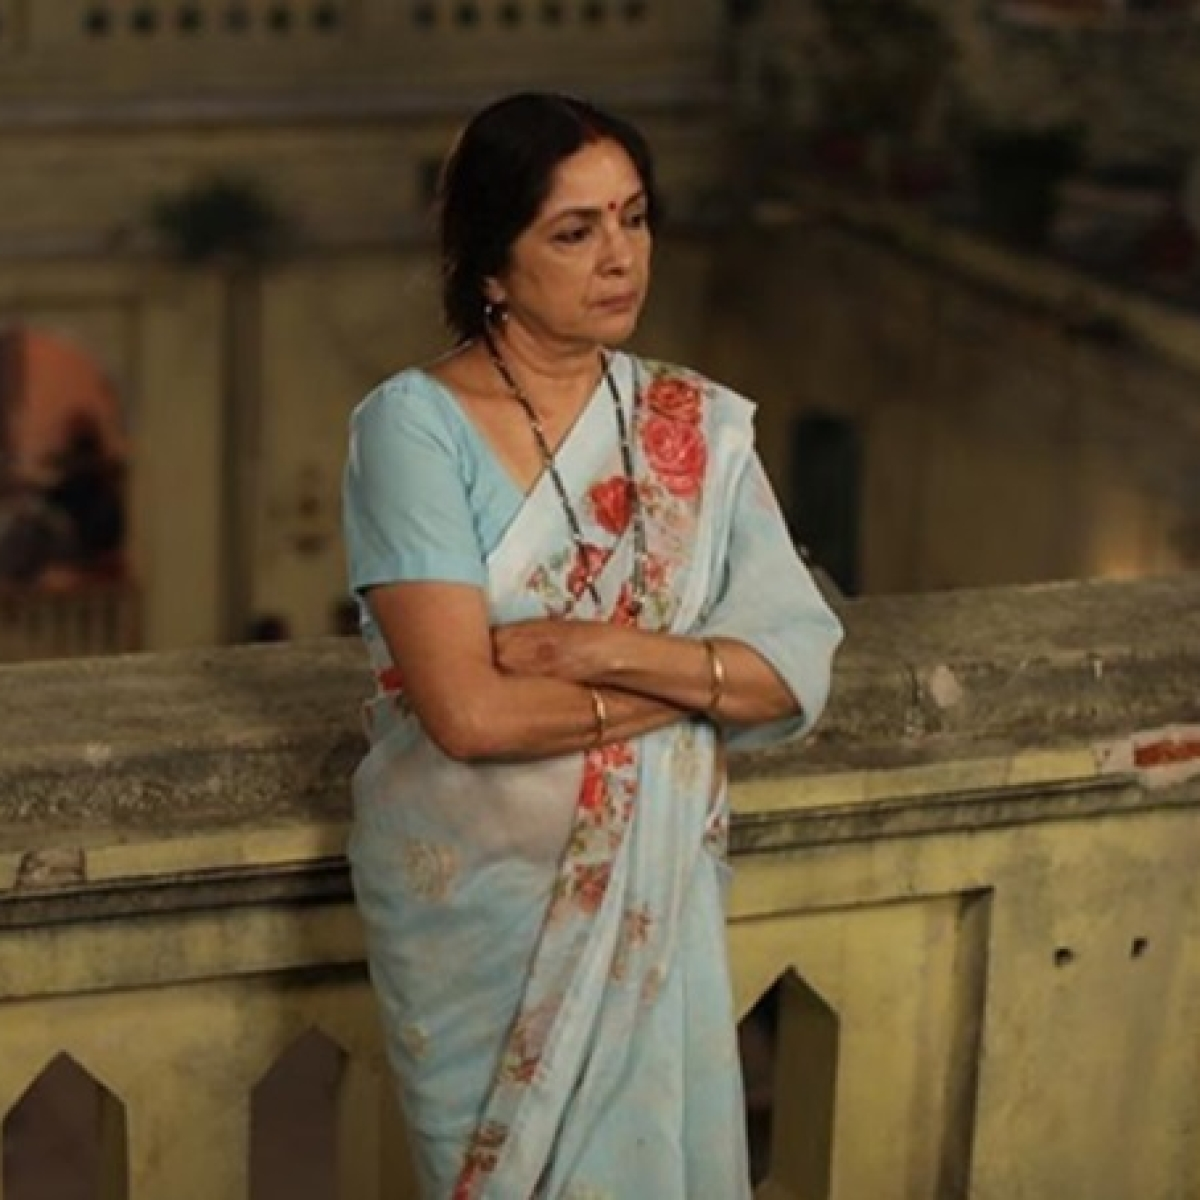 Watch Video: Actress Neena Gupta explains the perils of falling in love with a married man